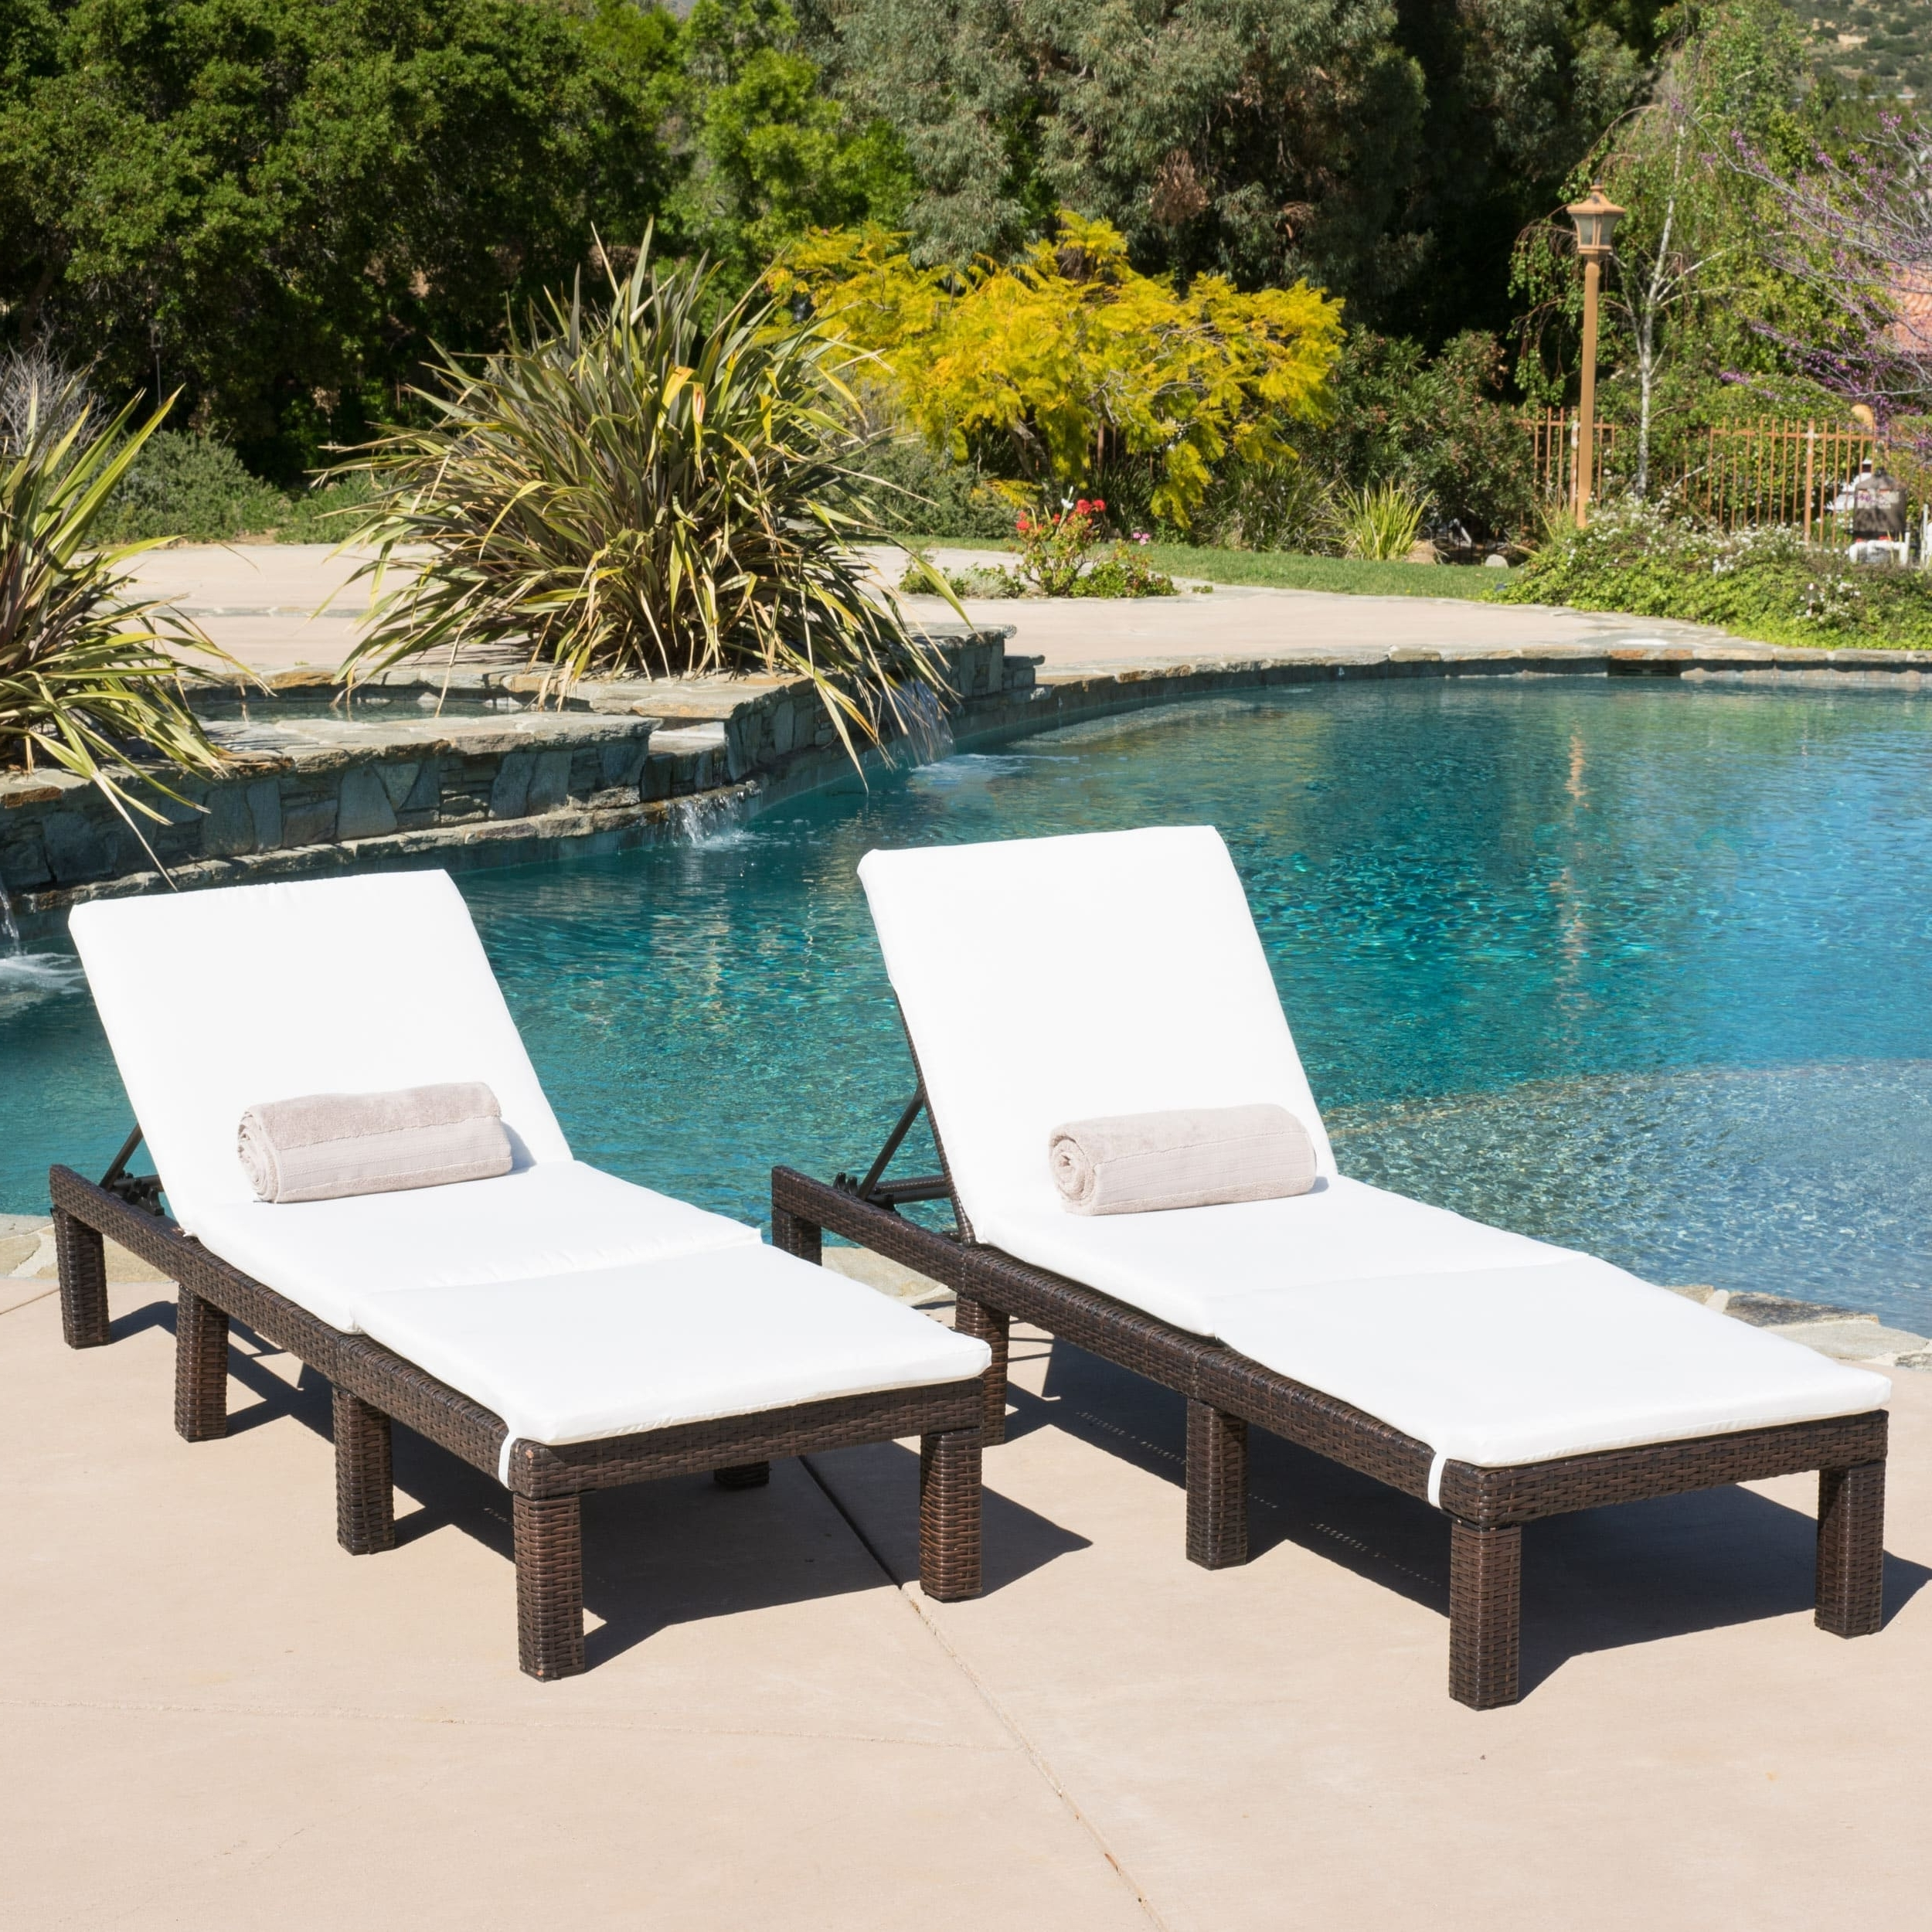 Overstock Outdoor Chaise Lounge Chairs Inside Trendy Jamaica Outdoor Chaise Lounge With Cushion (Set Of 2) (View 7 of 15)